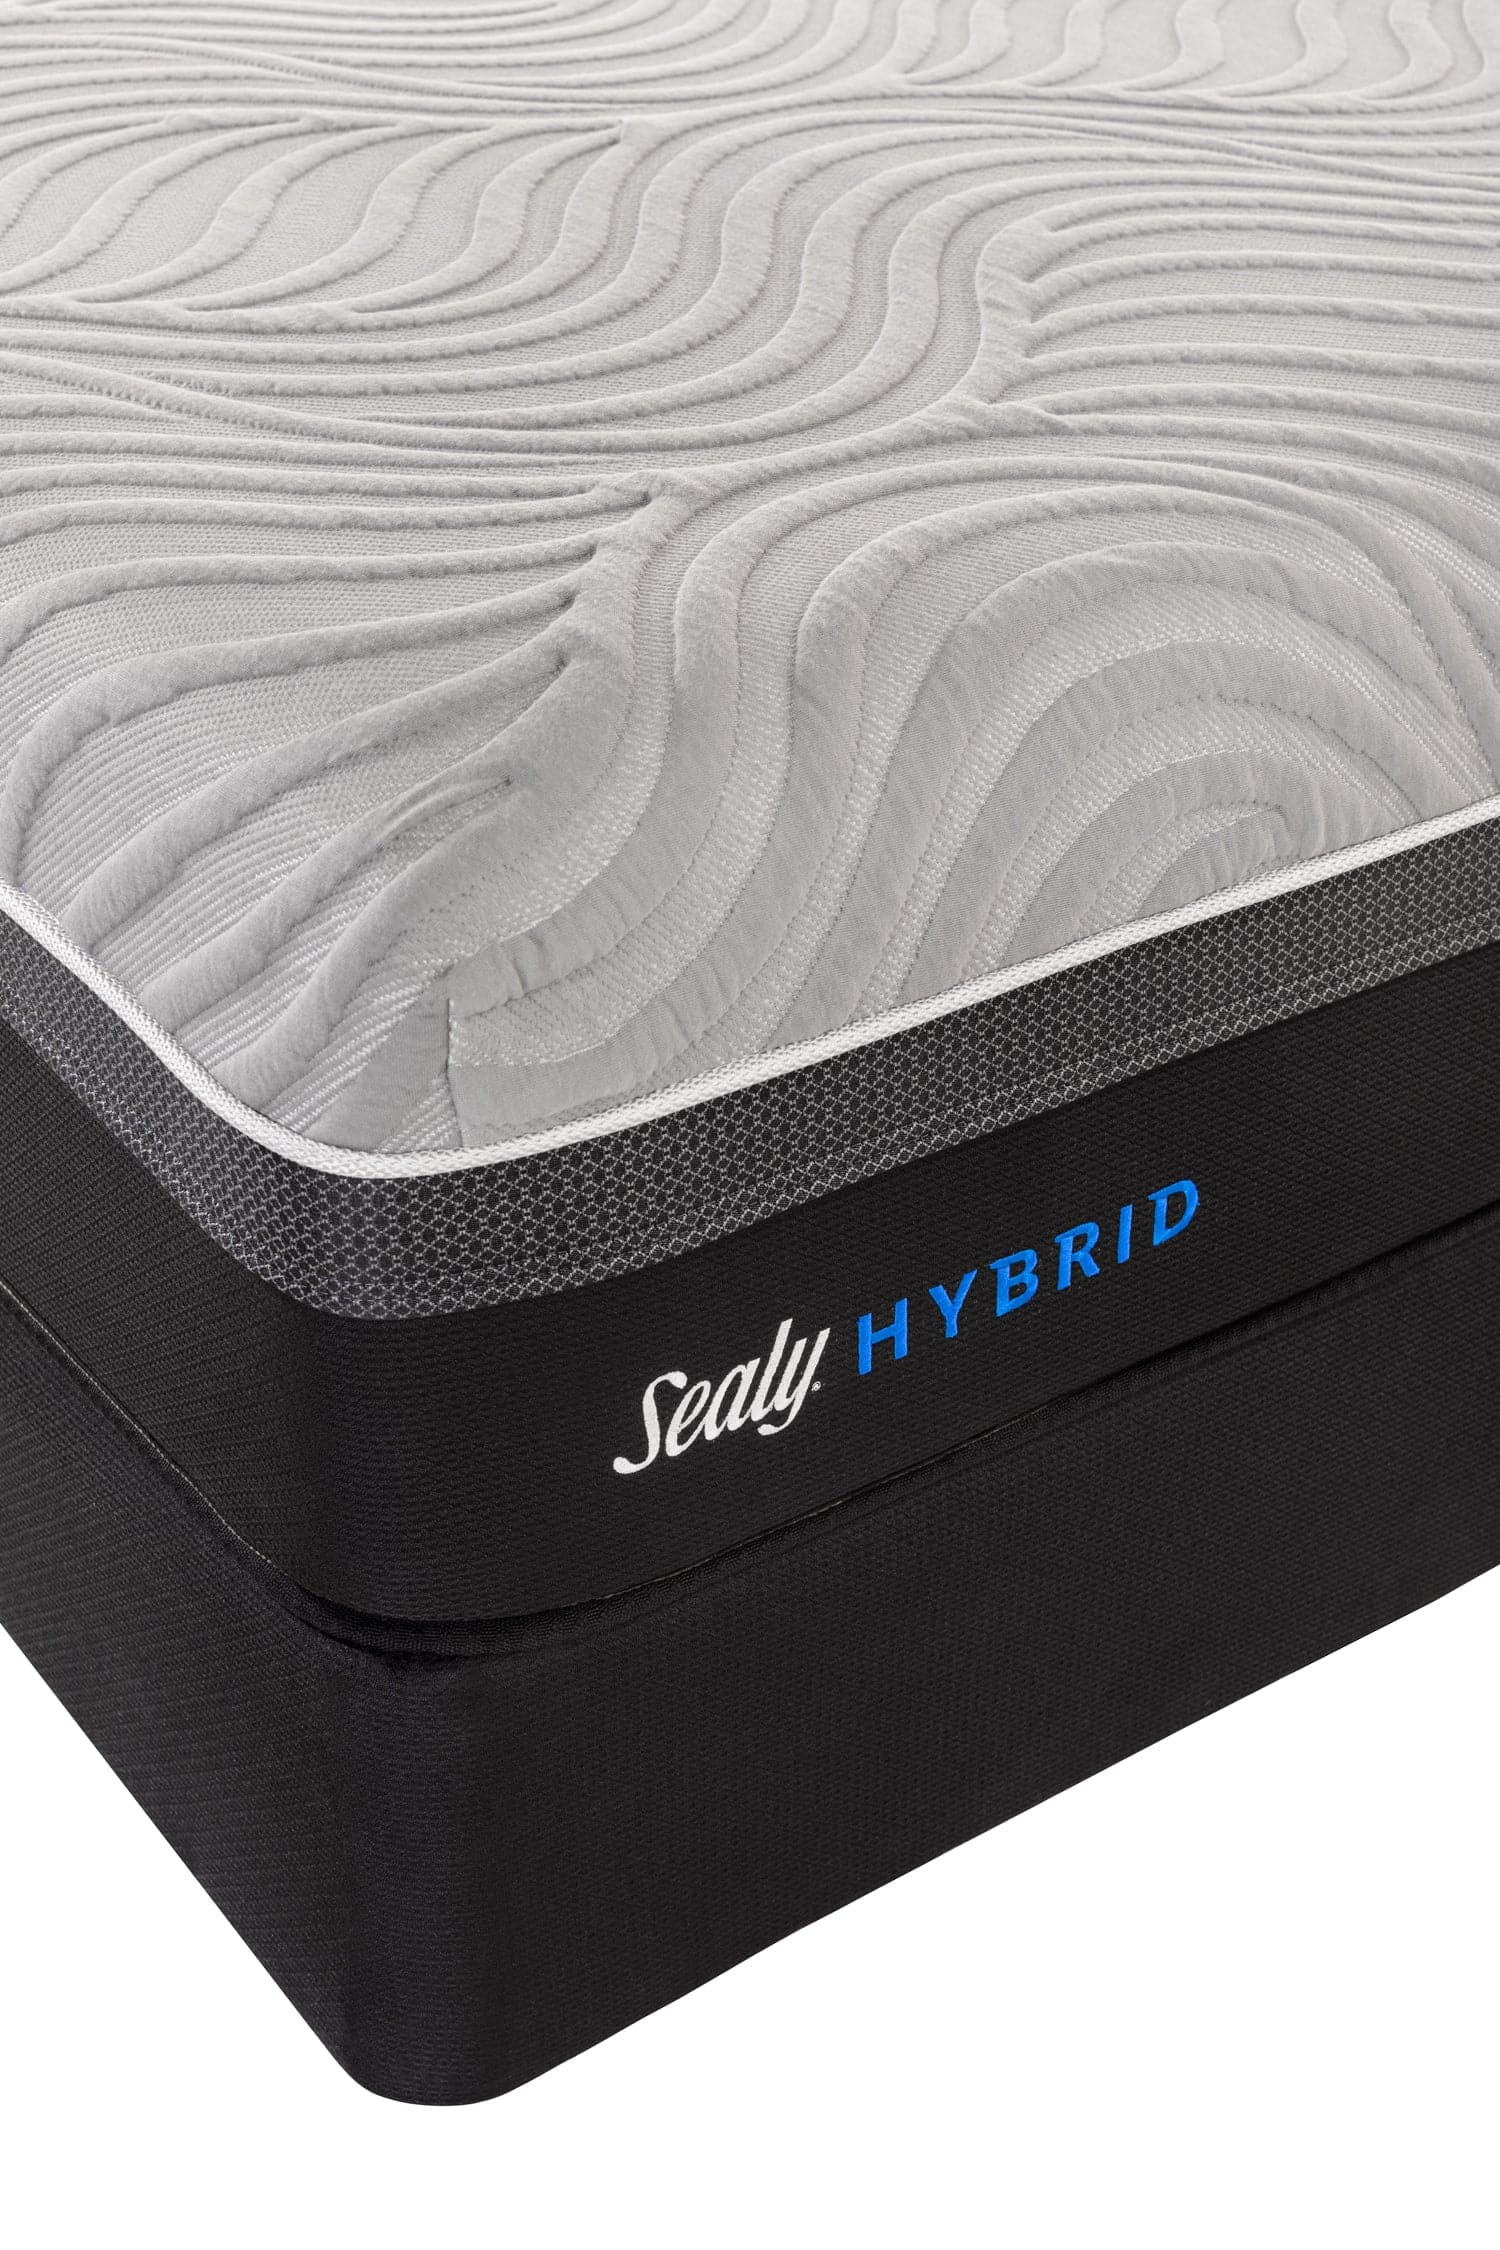 Sealy Hybrid Copper 2 Plush